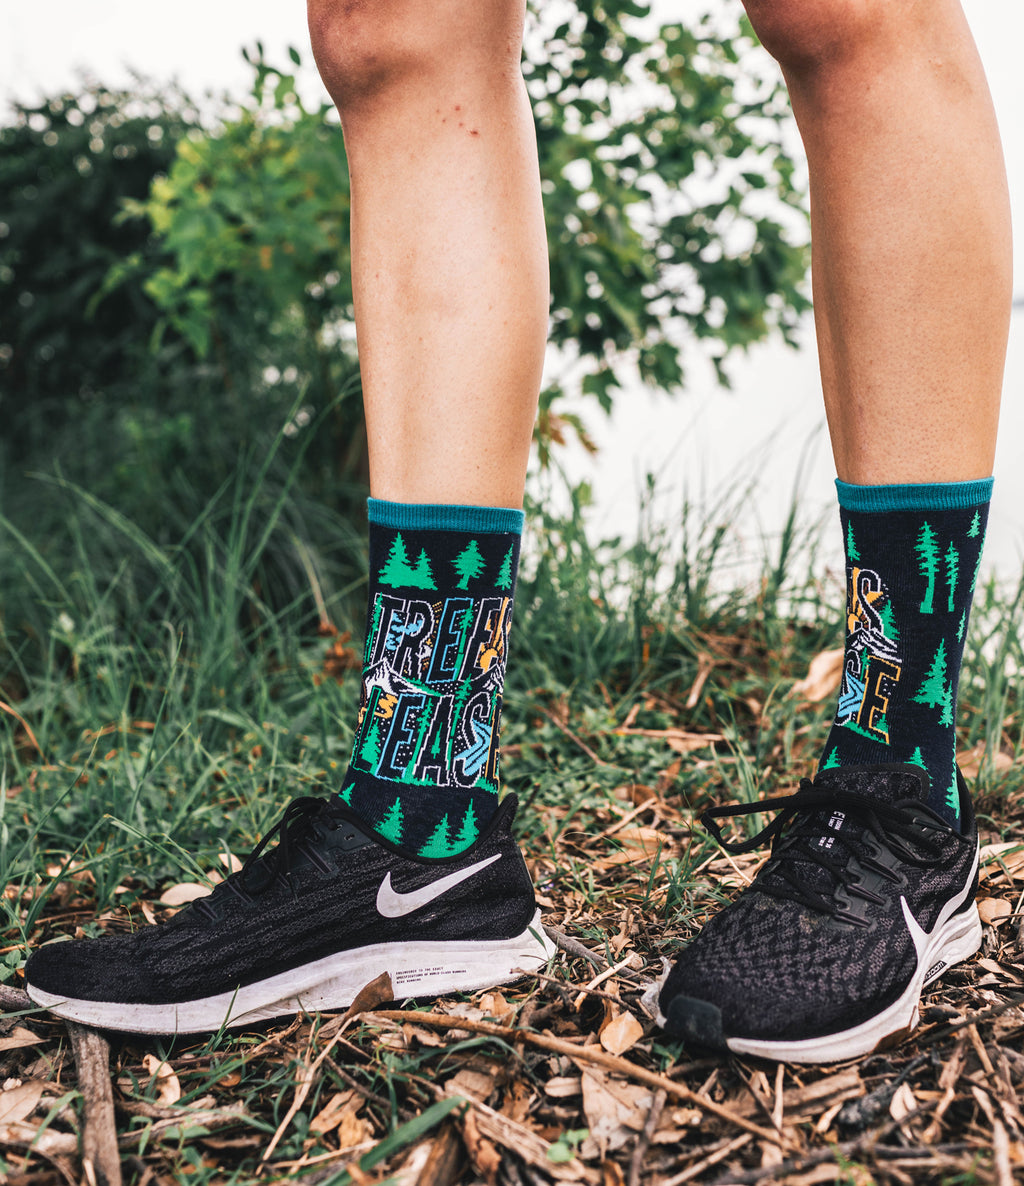 Atomicchild Women's Casual Socks - Trees Please